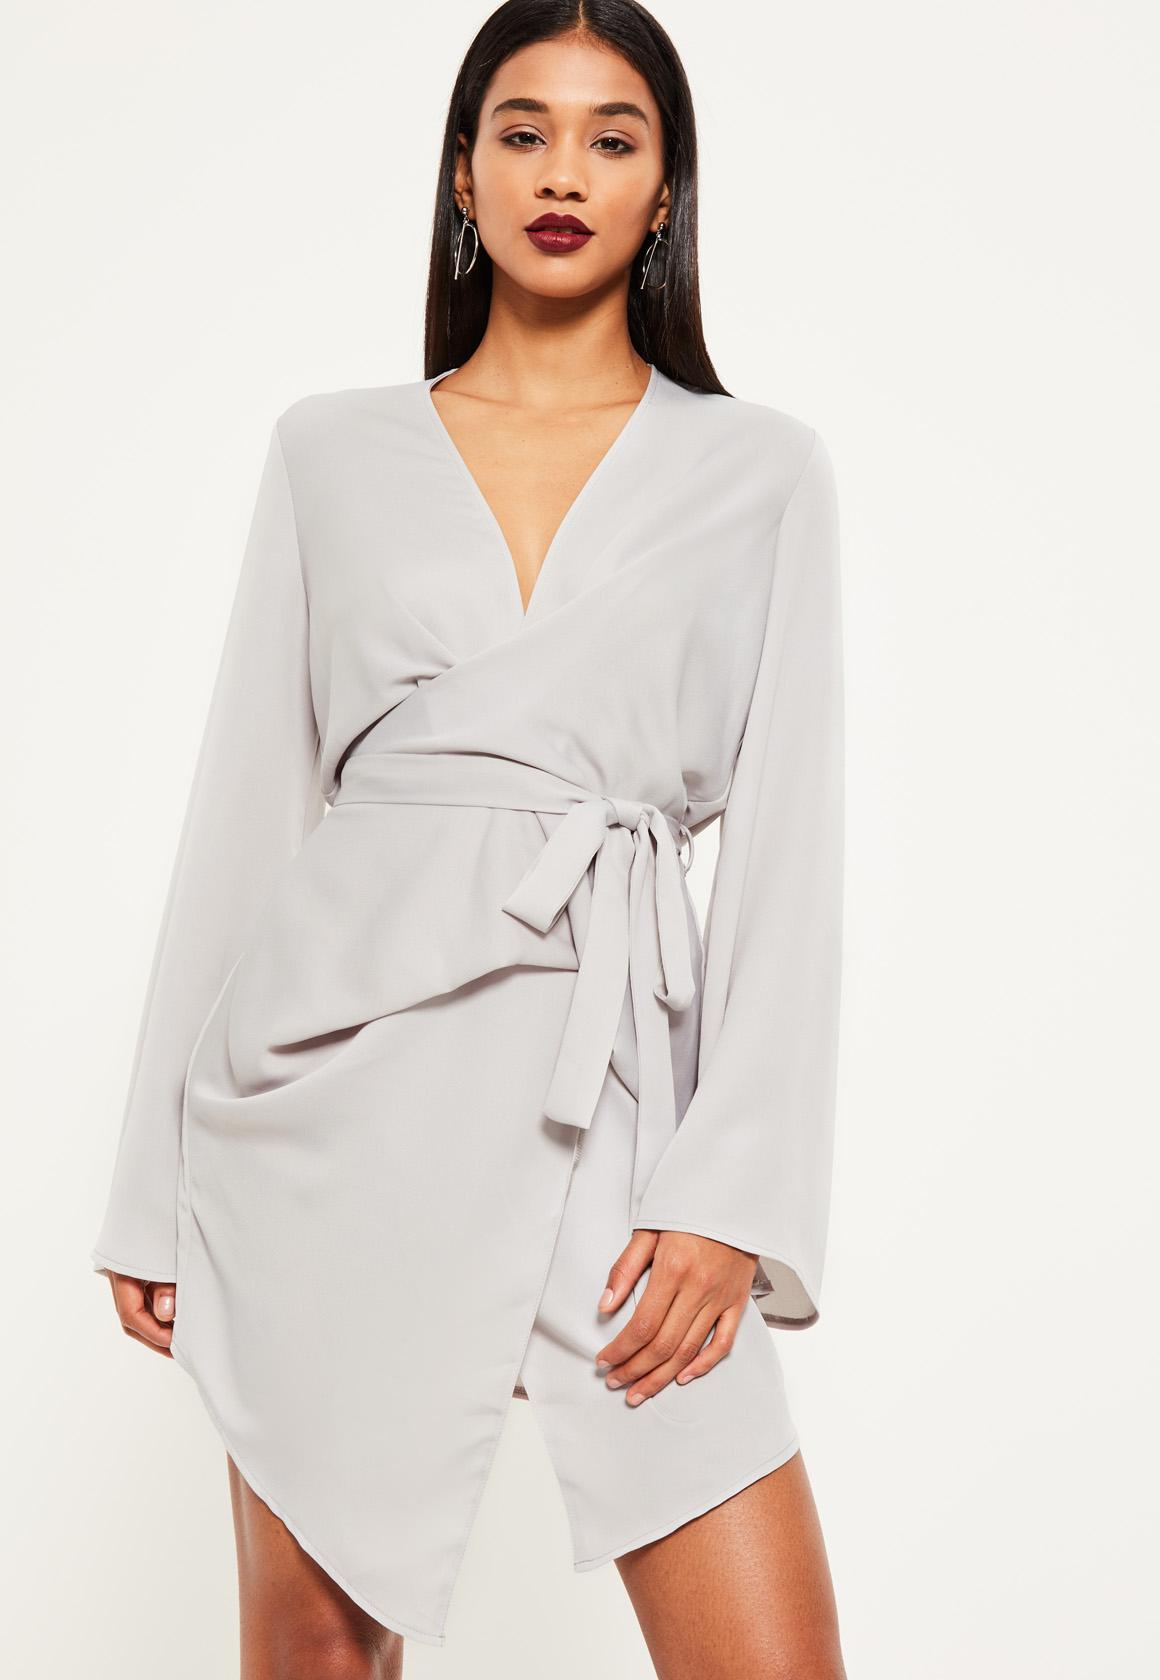 Clearance Eastbay Outlet Best Seller Missguided Long Sleeve Wrap Dress jwqhCz7m8p